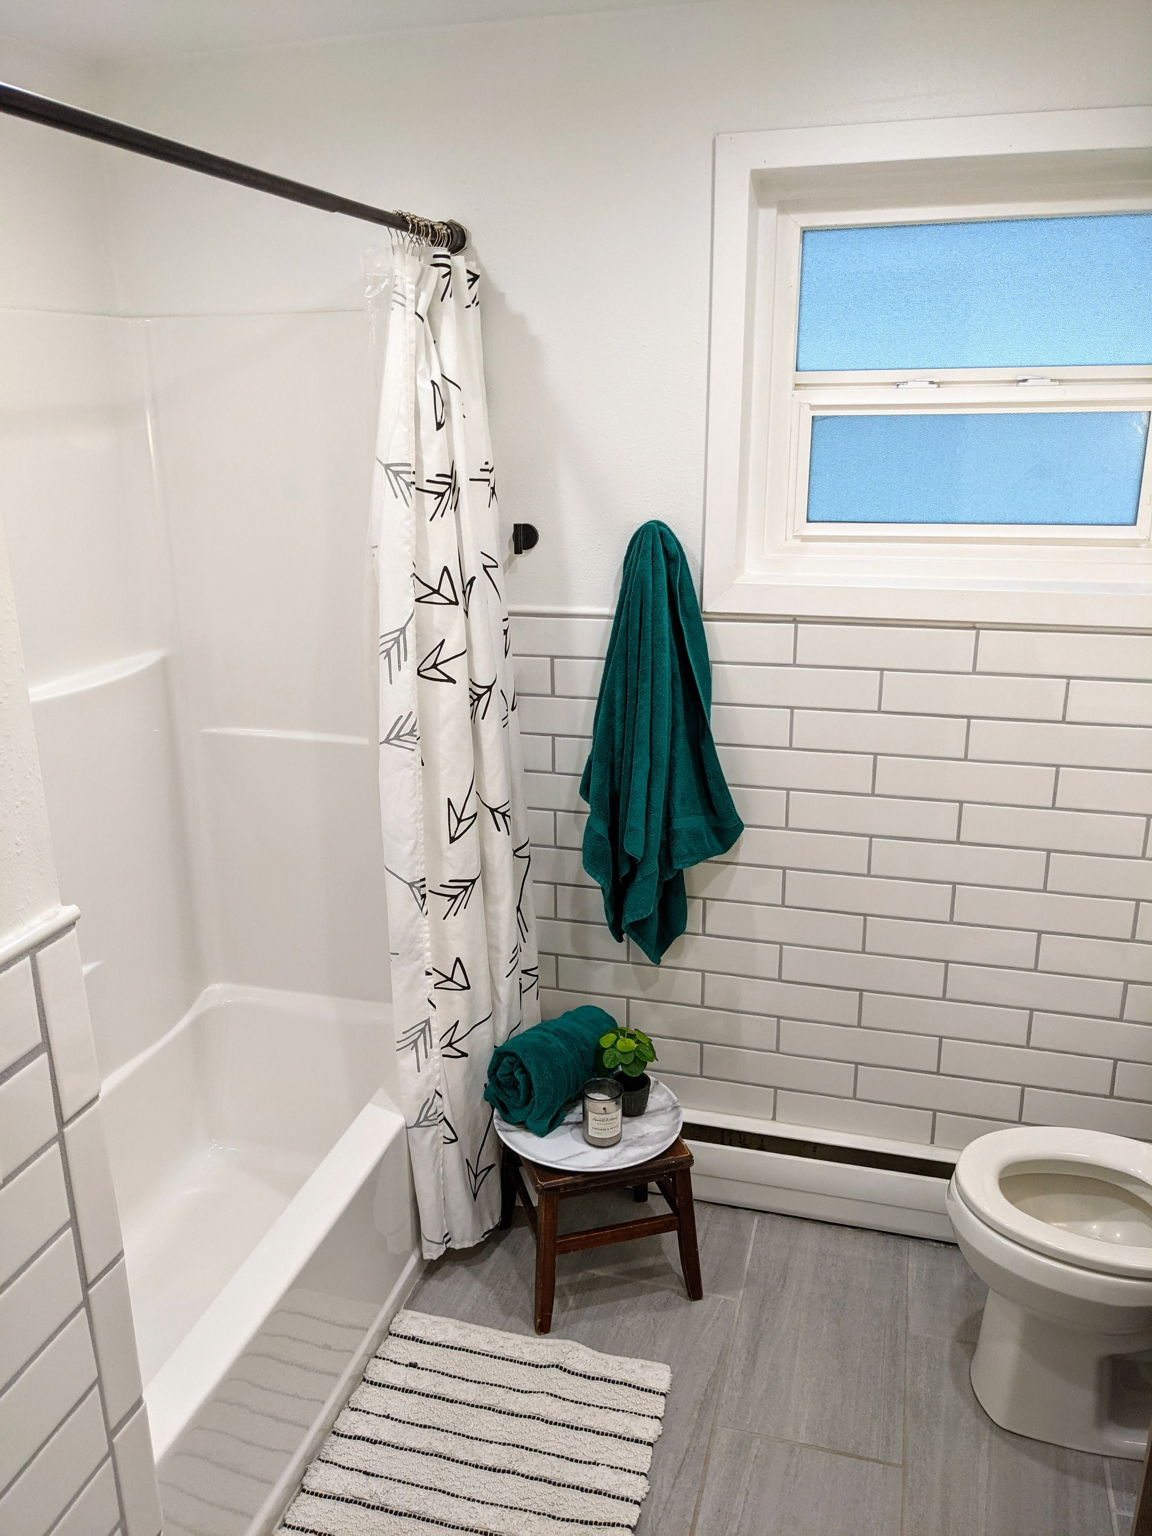 Completely Remodeled Bathrooms with Tub